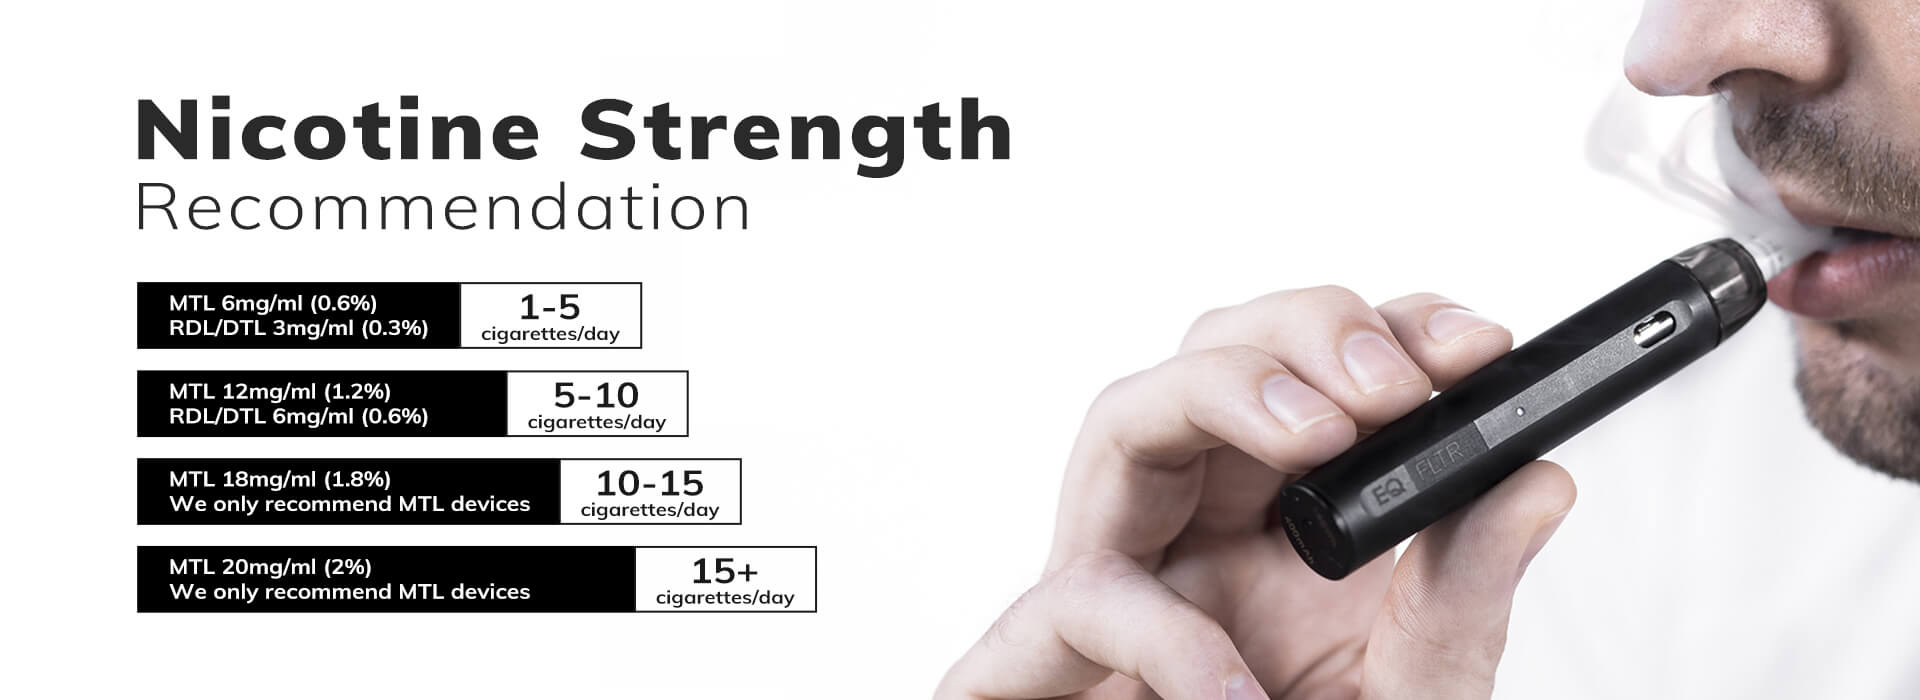 Recommended Nicontine Strength